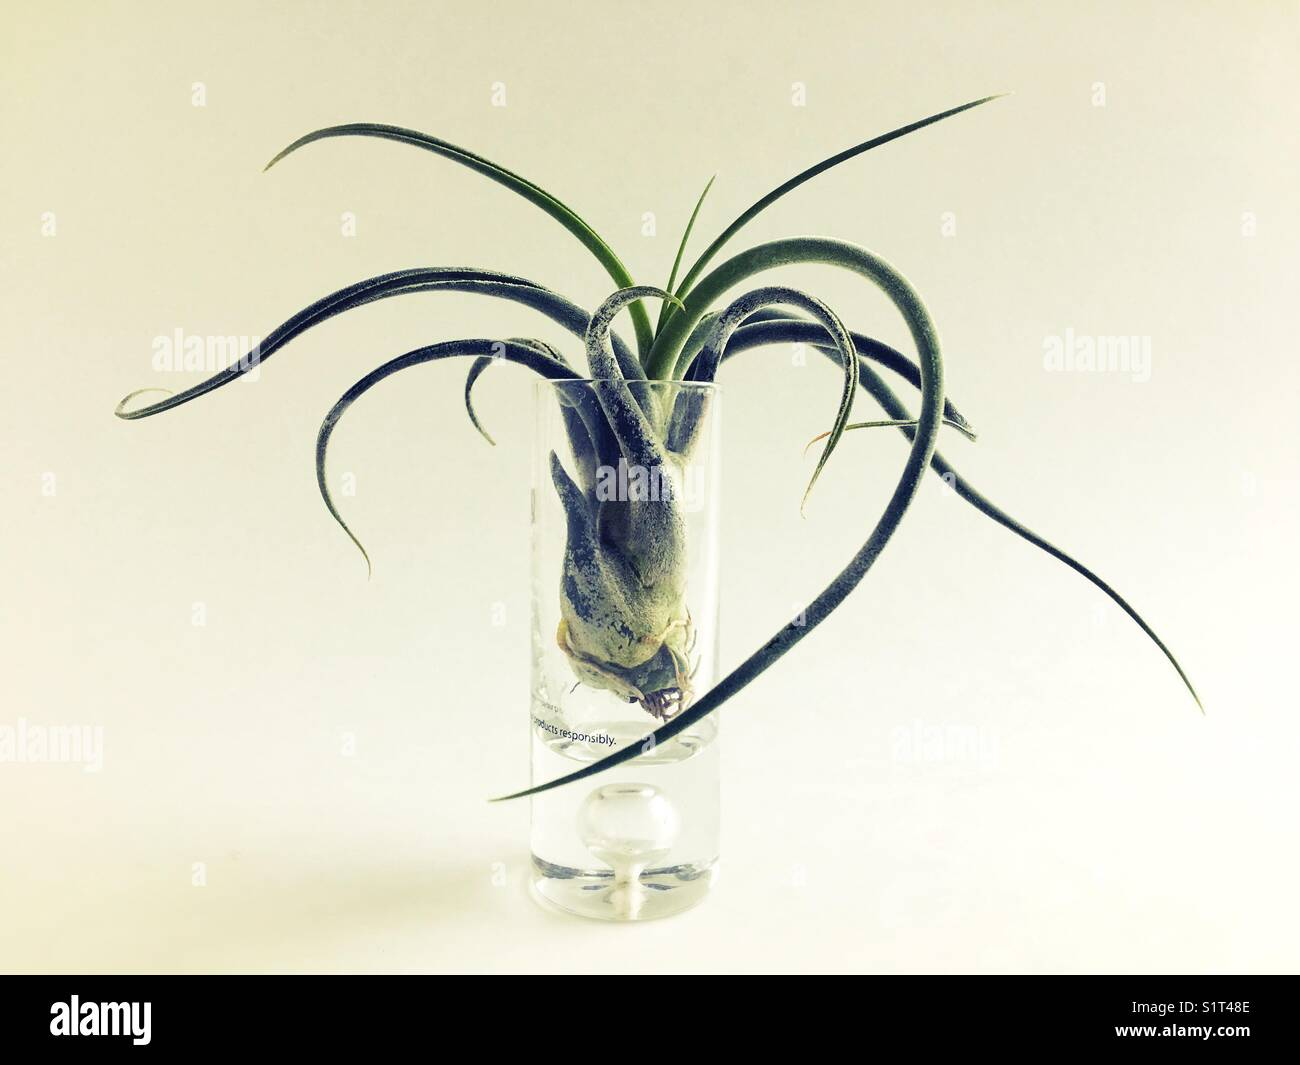 An air plant in a shot glass. - Stock Image